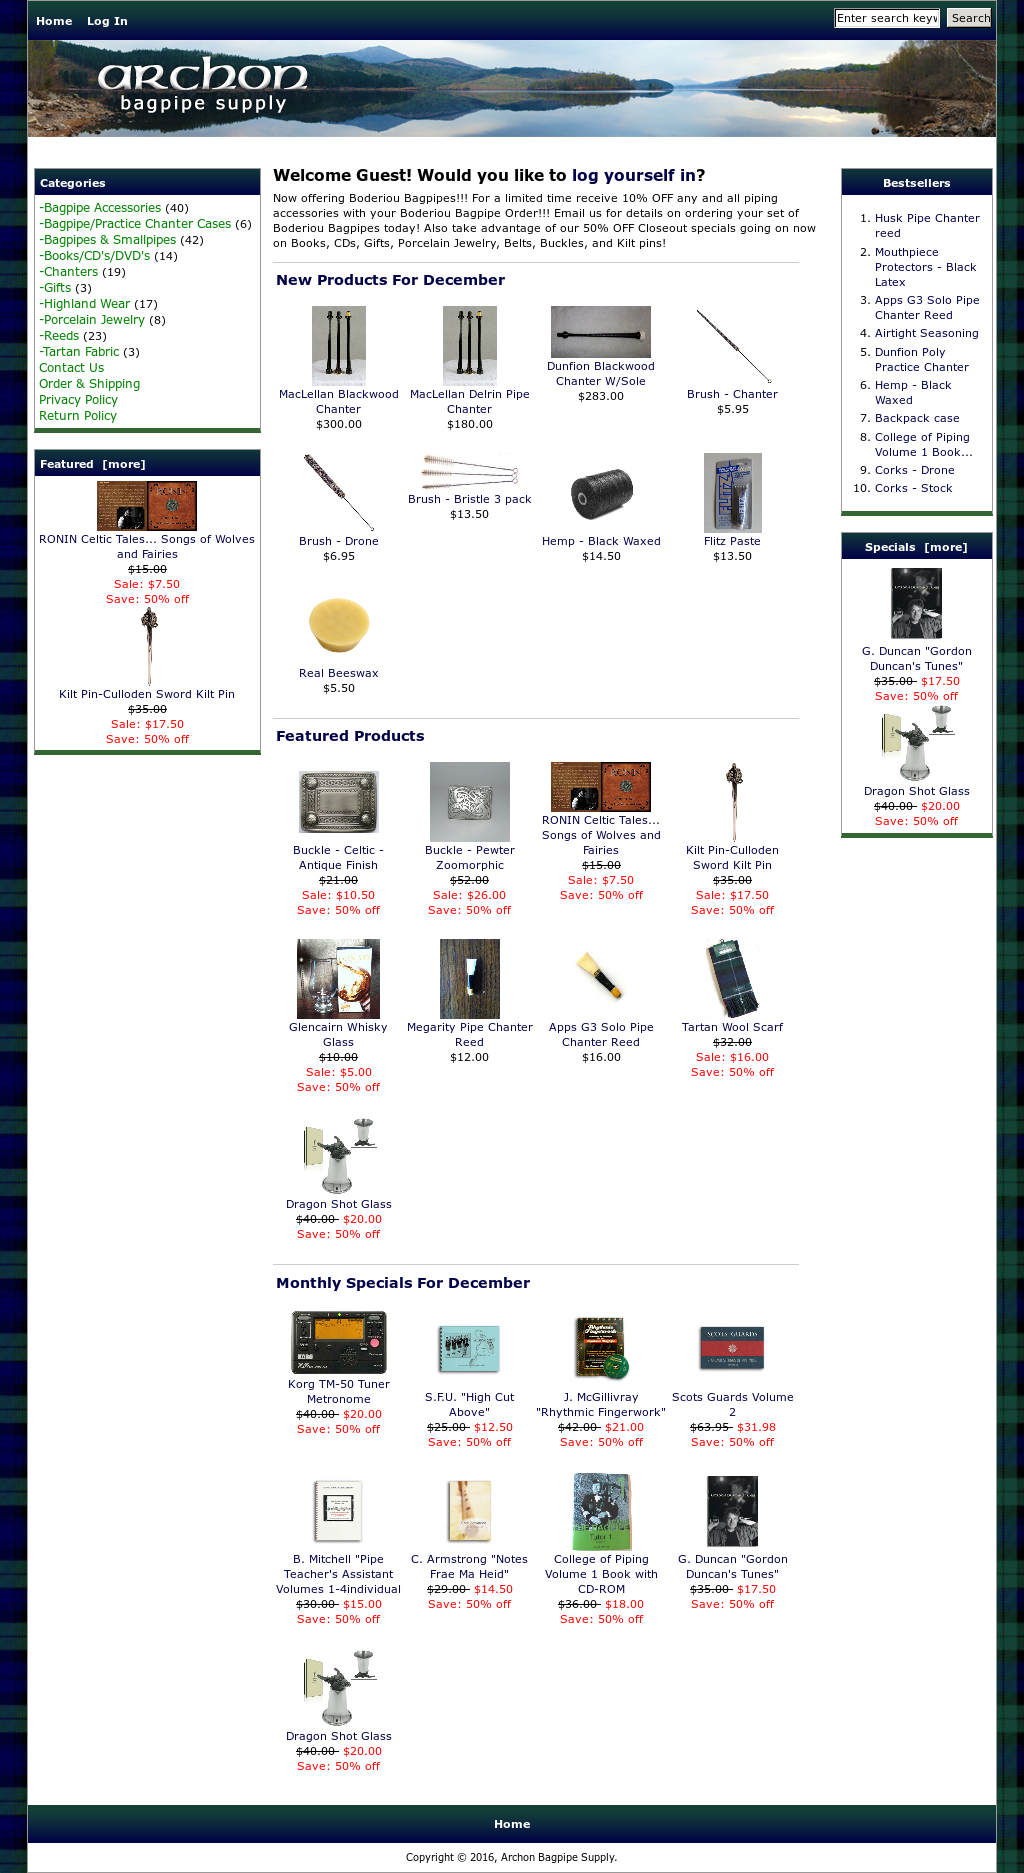 Archon Bagpipe Supply Competitors, Revenue and Employees